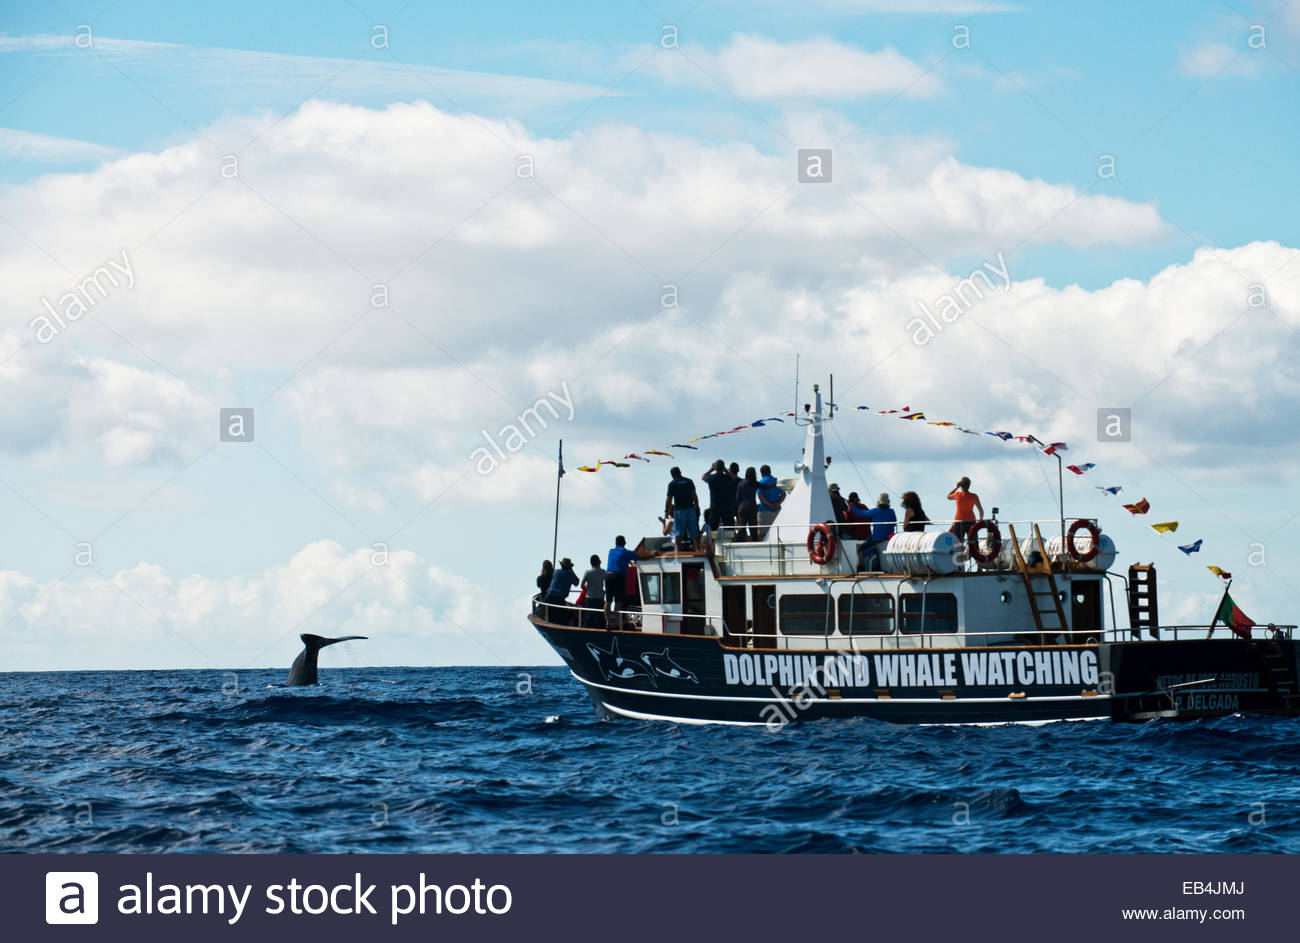 Whale watchers enjoy a moment where a sperm whale fluke rises above the surface of the ocean. - Stock Image